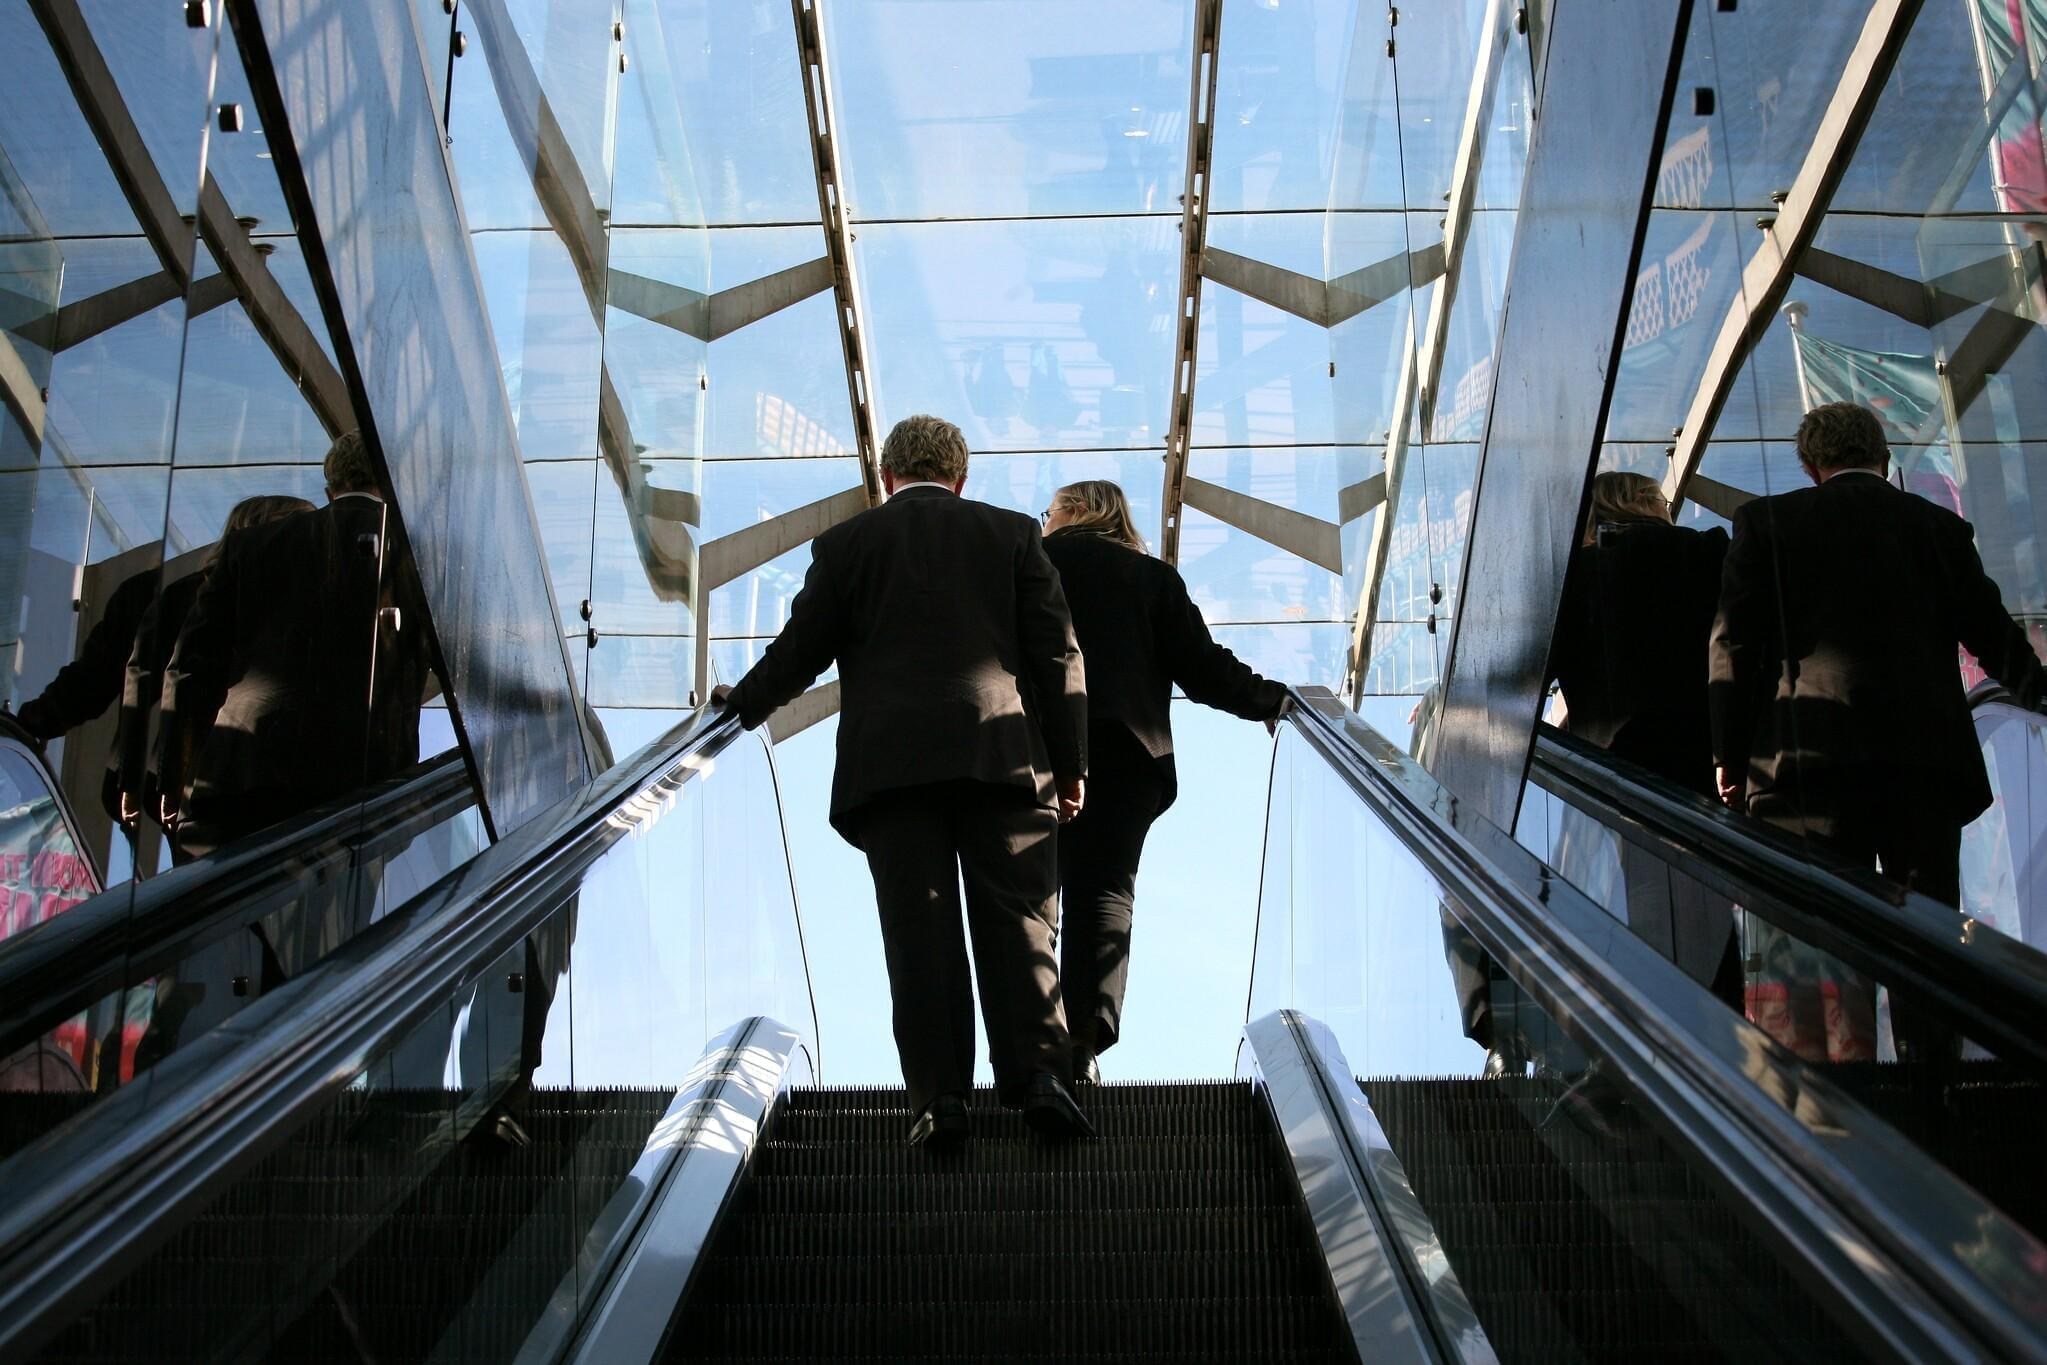 People on an escalator.